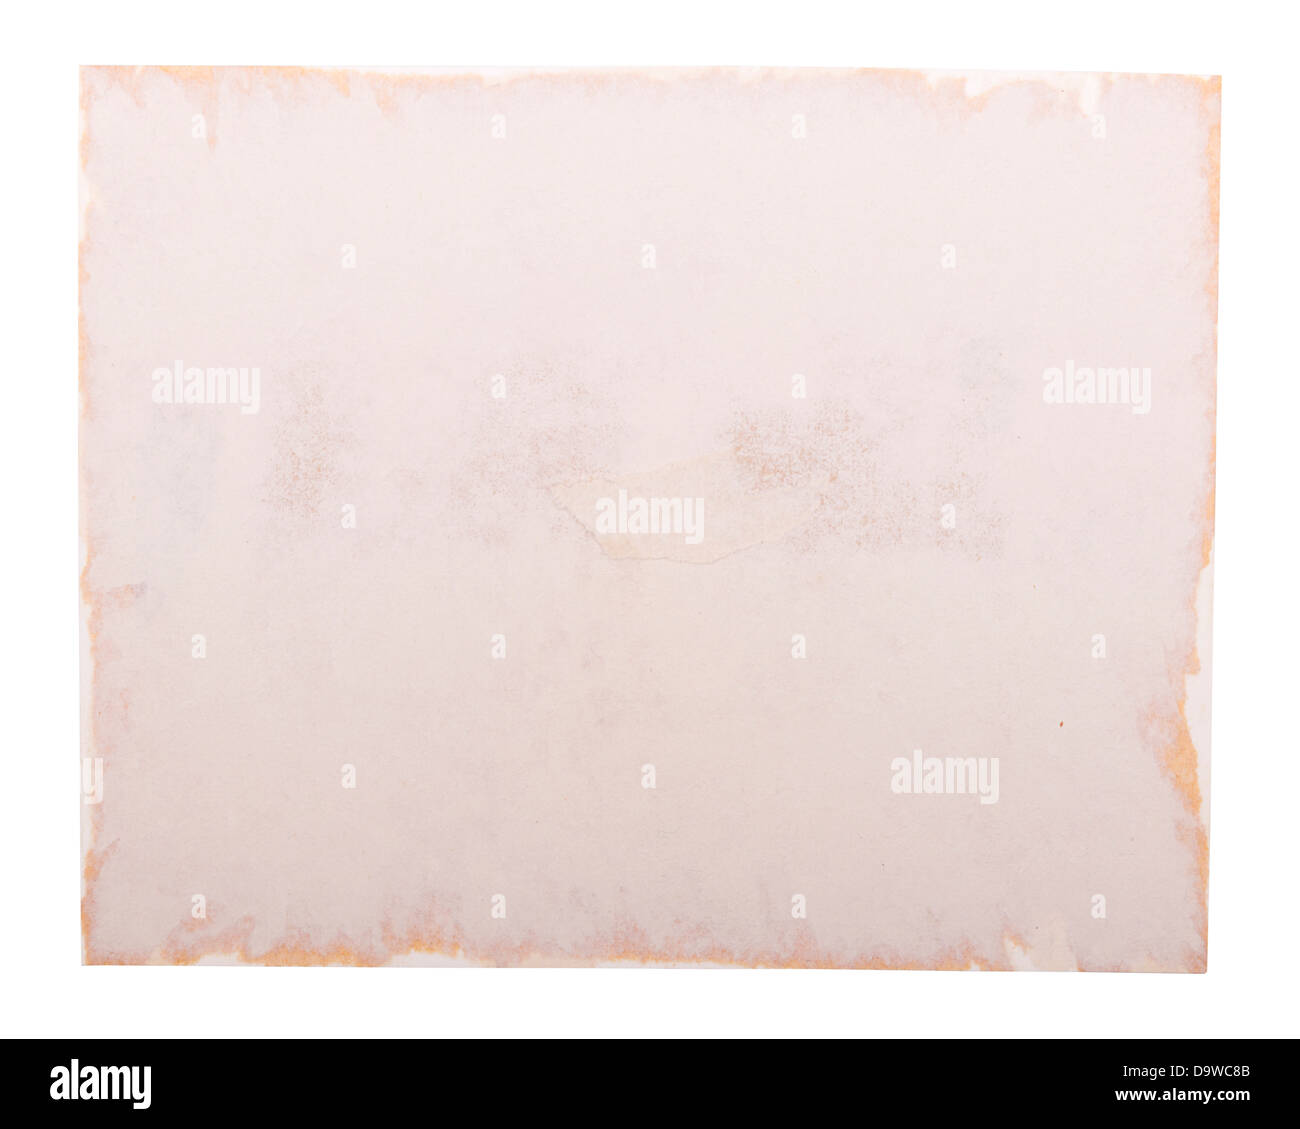 Old photo paper edge as a photo frame, isolated on white - Stock Image